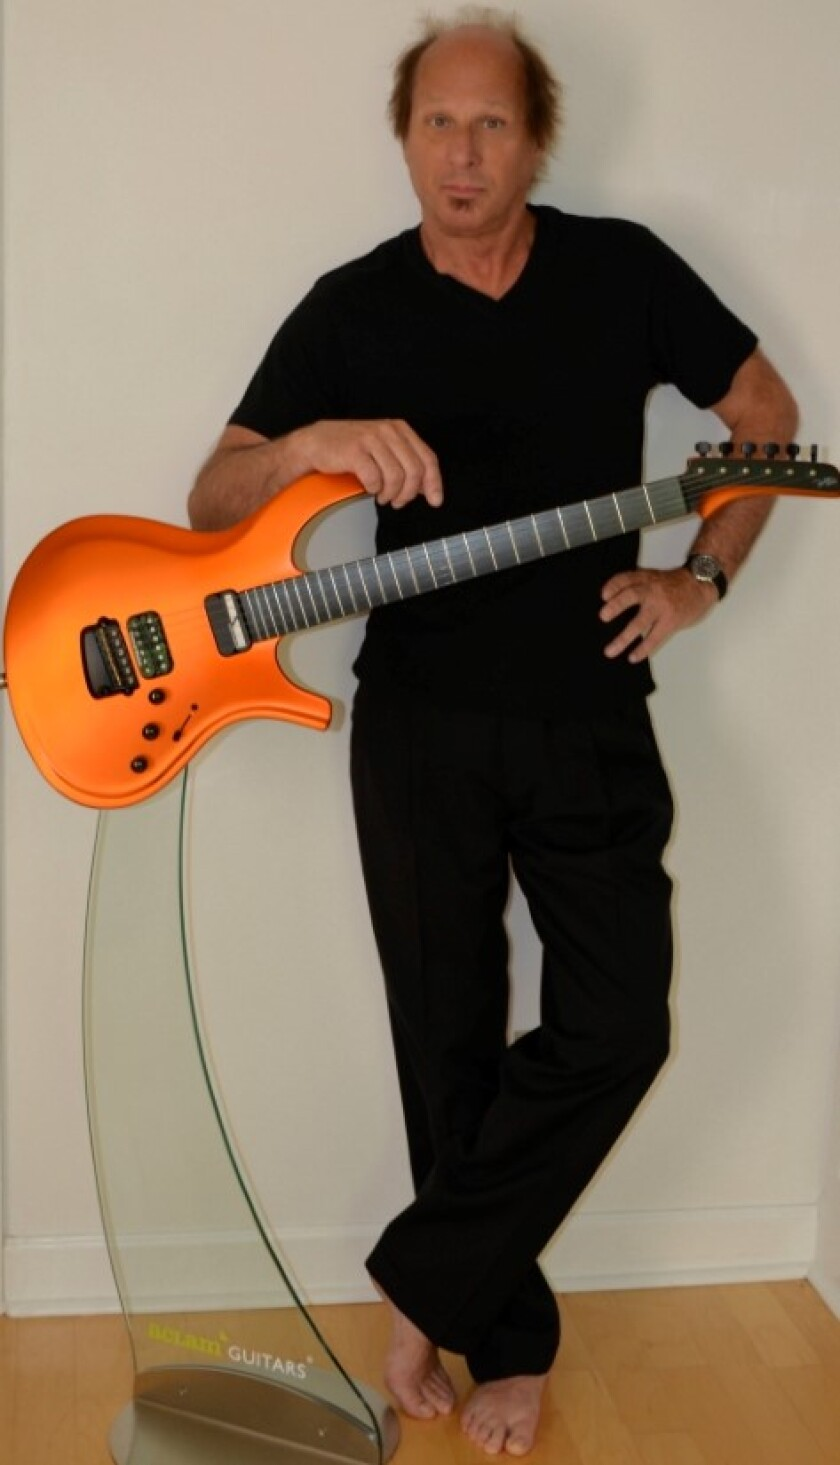 Guitar wizard Adrian Belew is now on tour with his new band. They perform Friday at the Music Box.